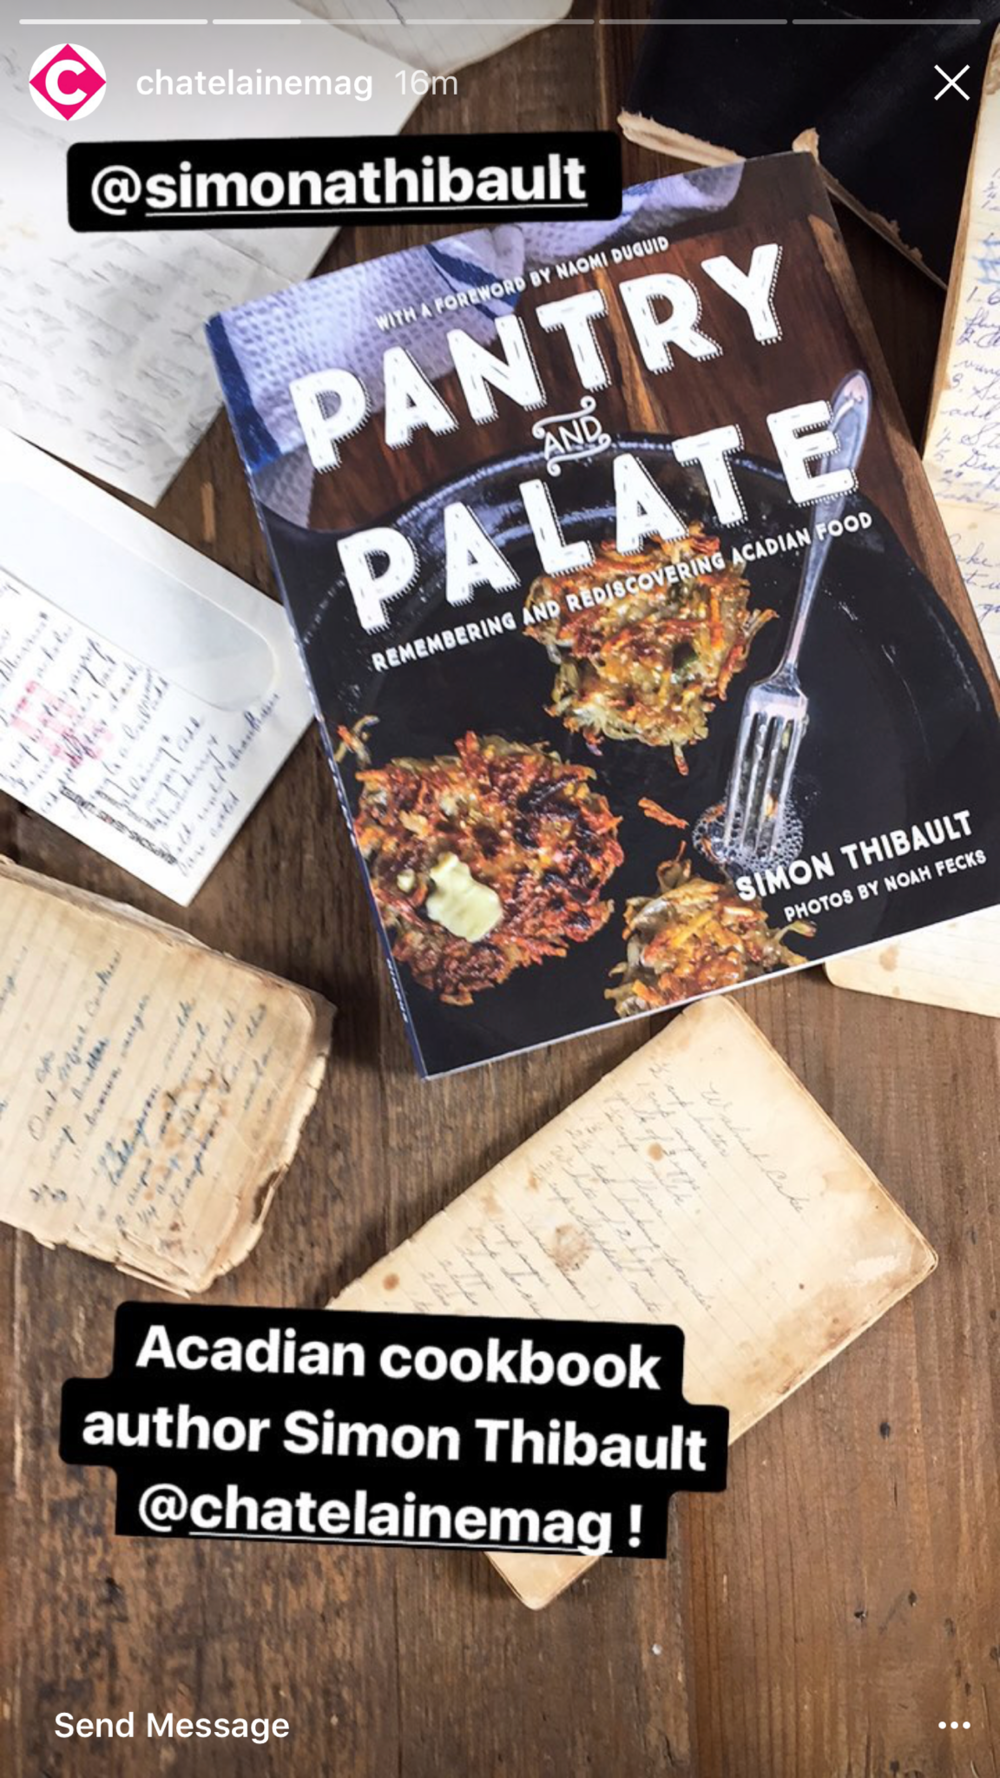 A glimpse of Chatelaine's Instagram Stories promoting Pantry and Palate.